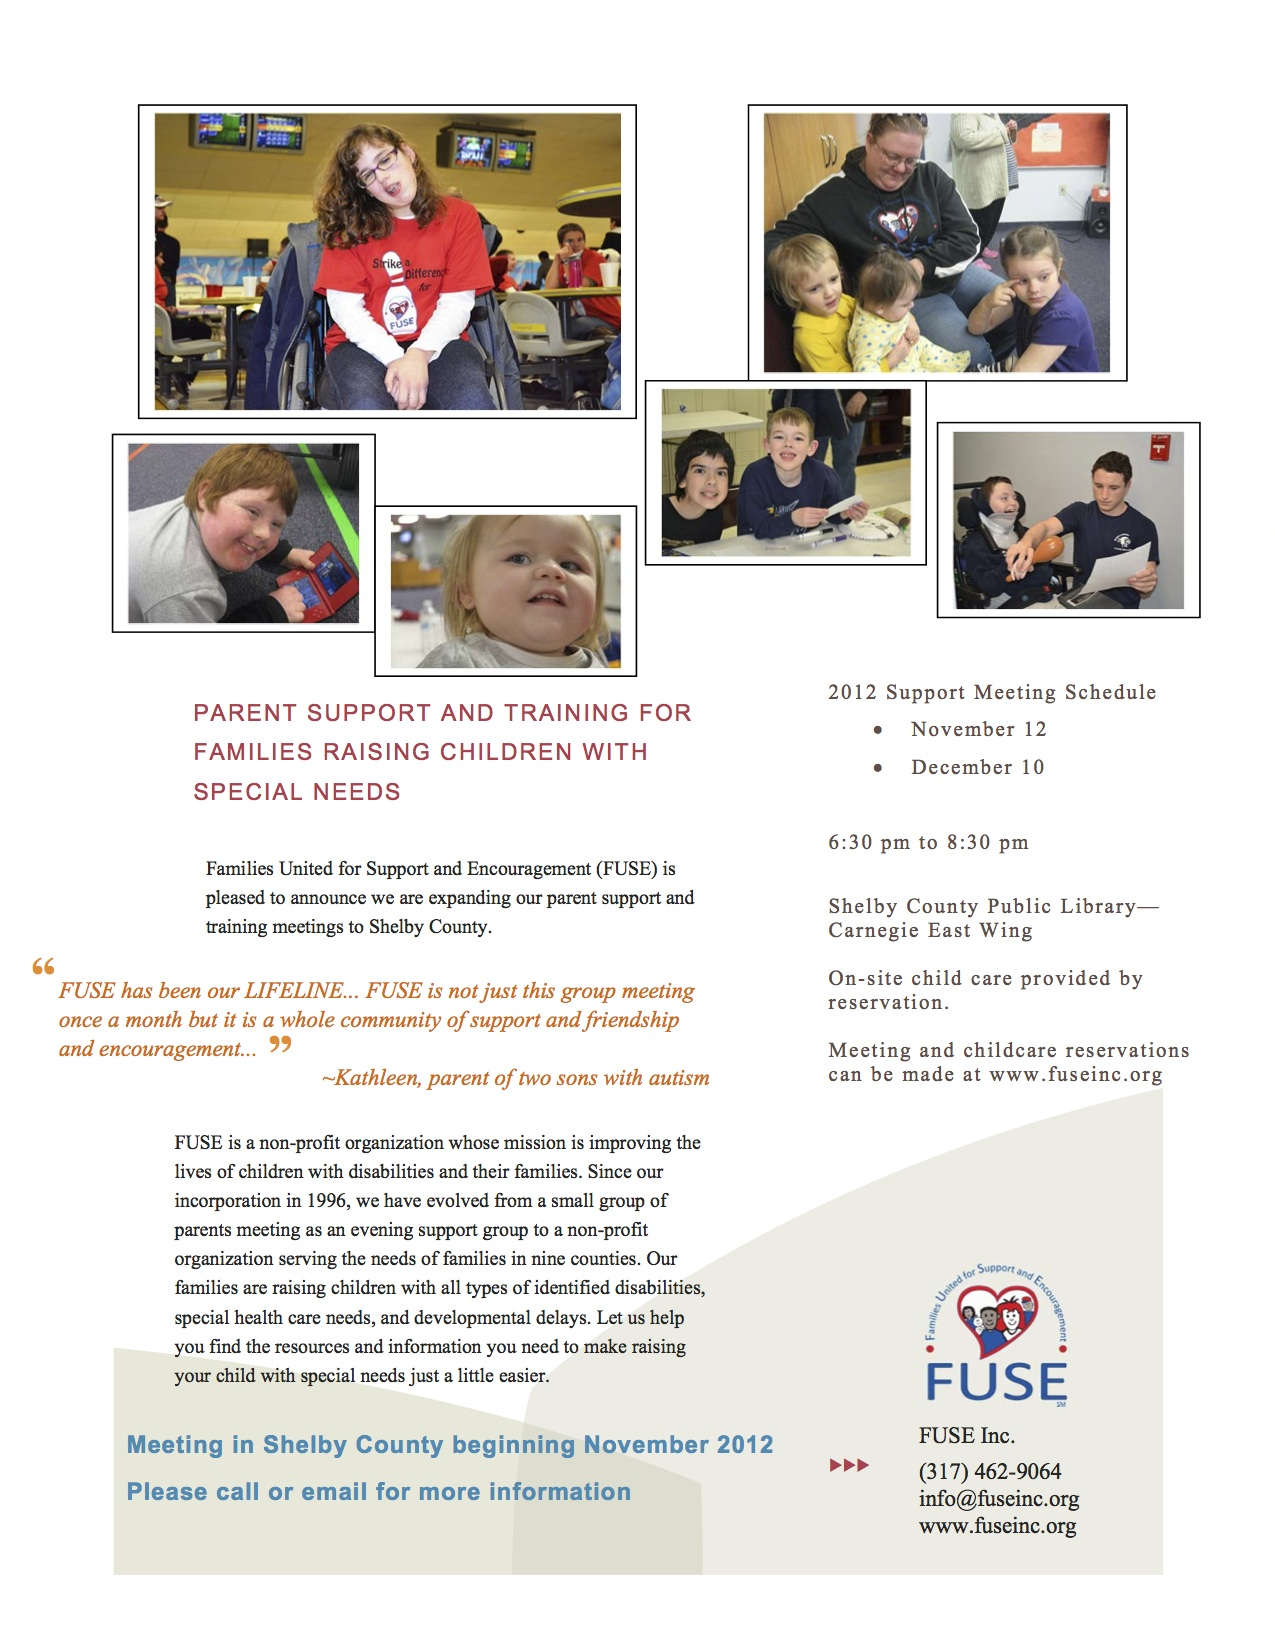 FUSE Shelby County Parent Meeting Flyer